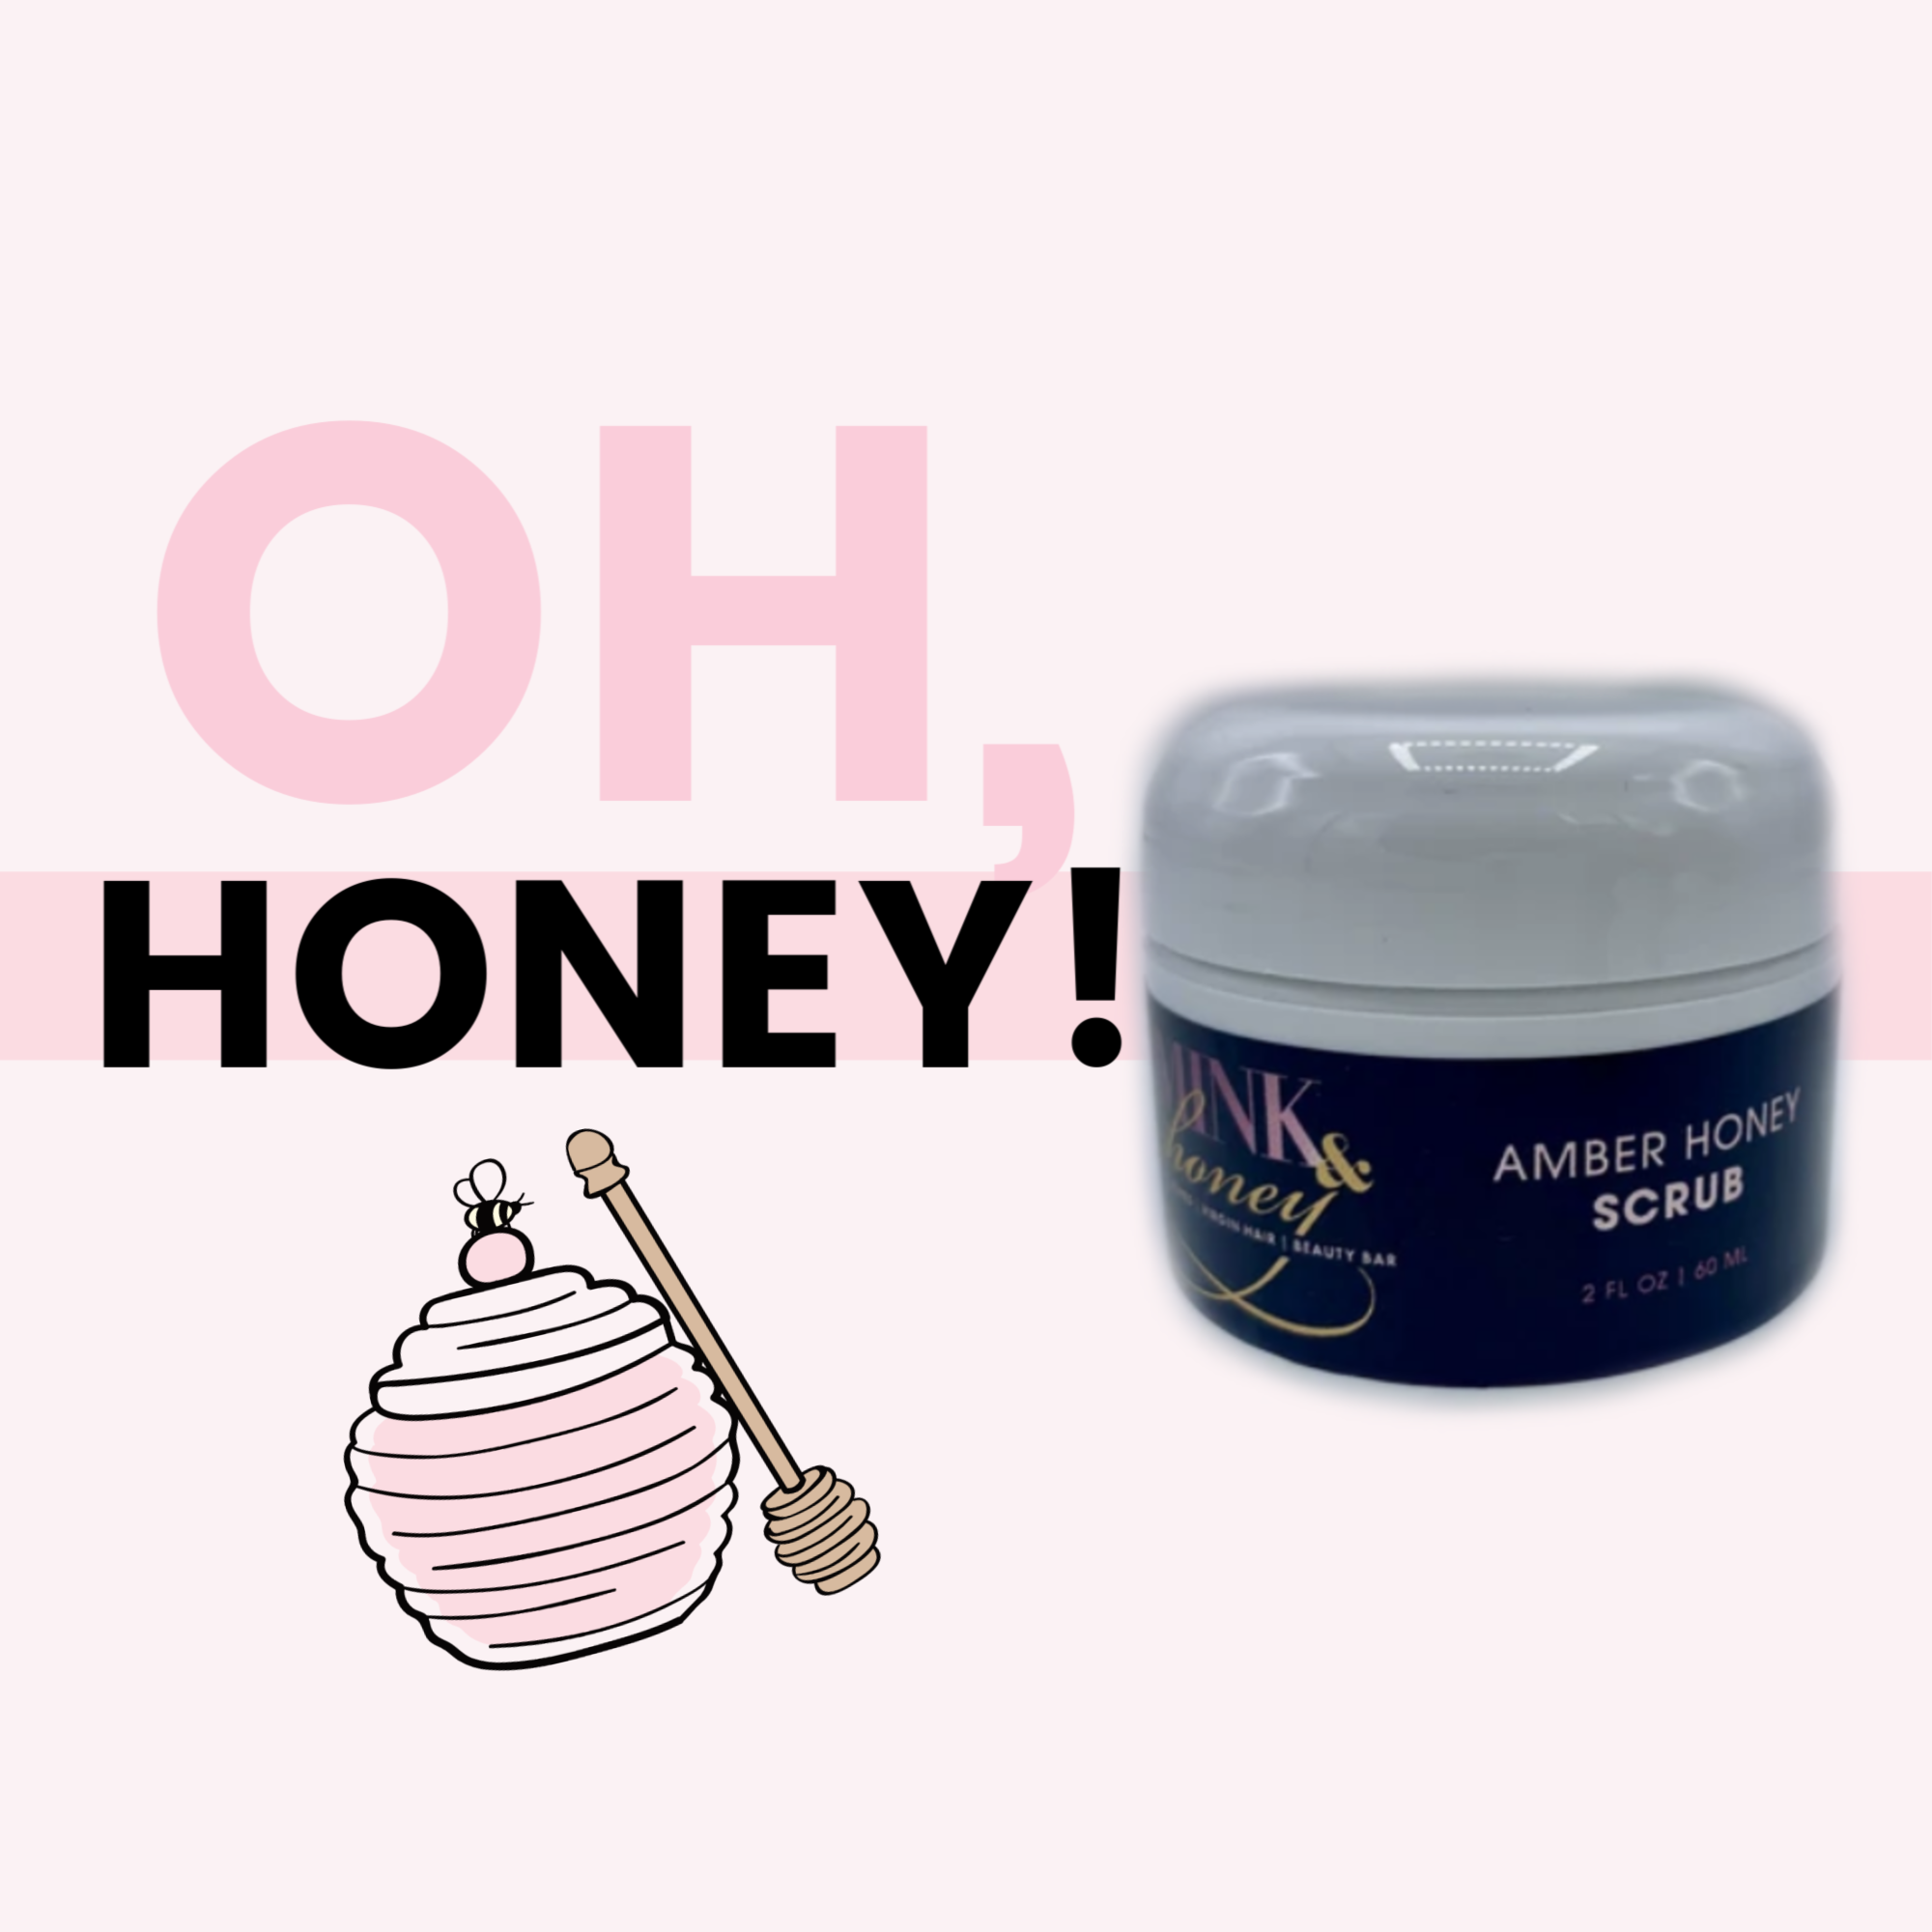 Amber Honey Scrub